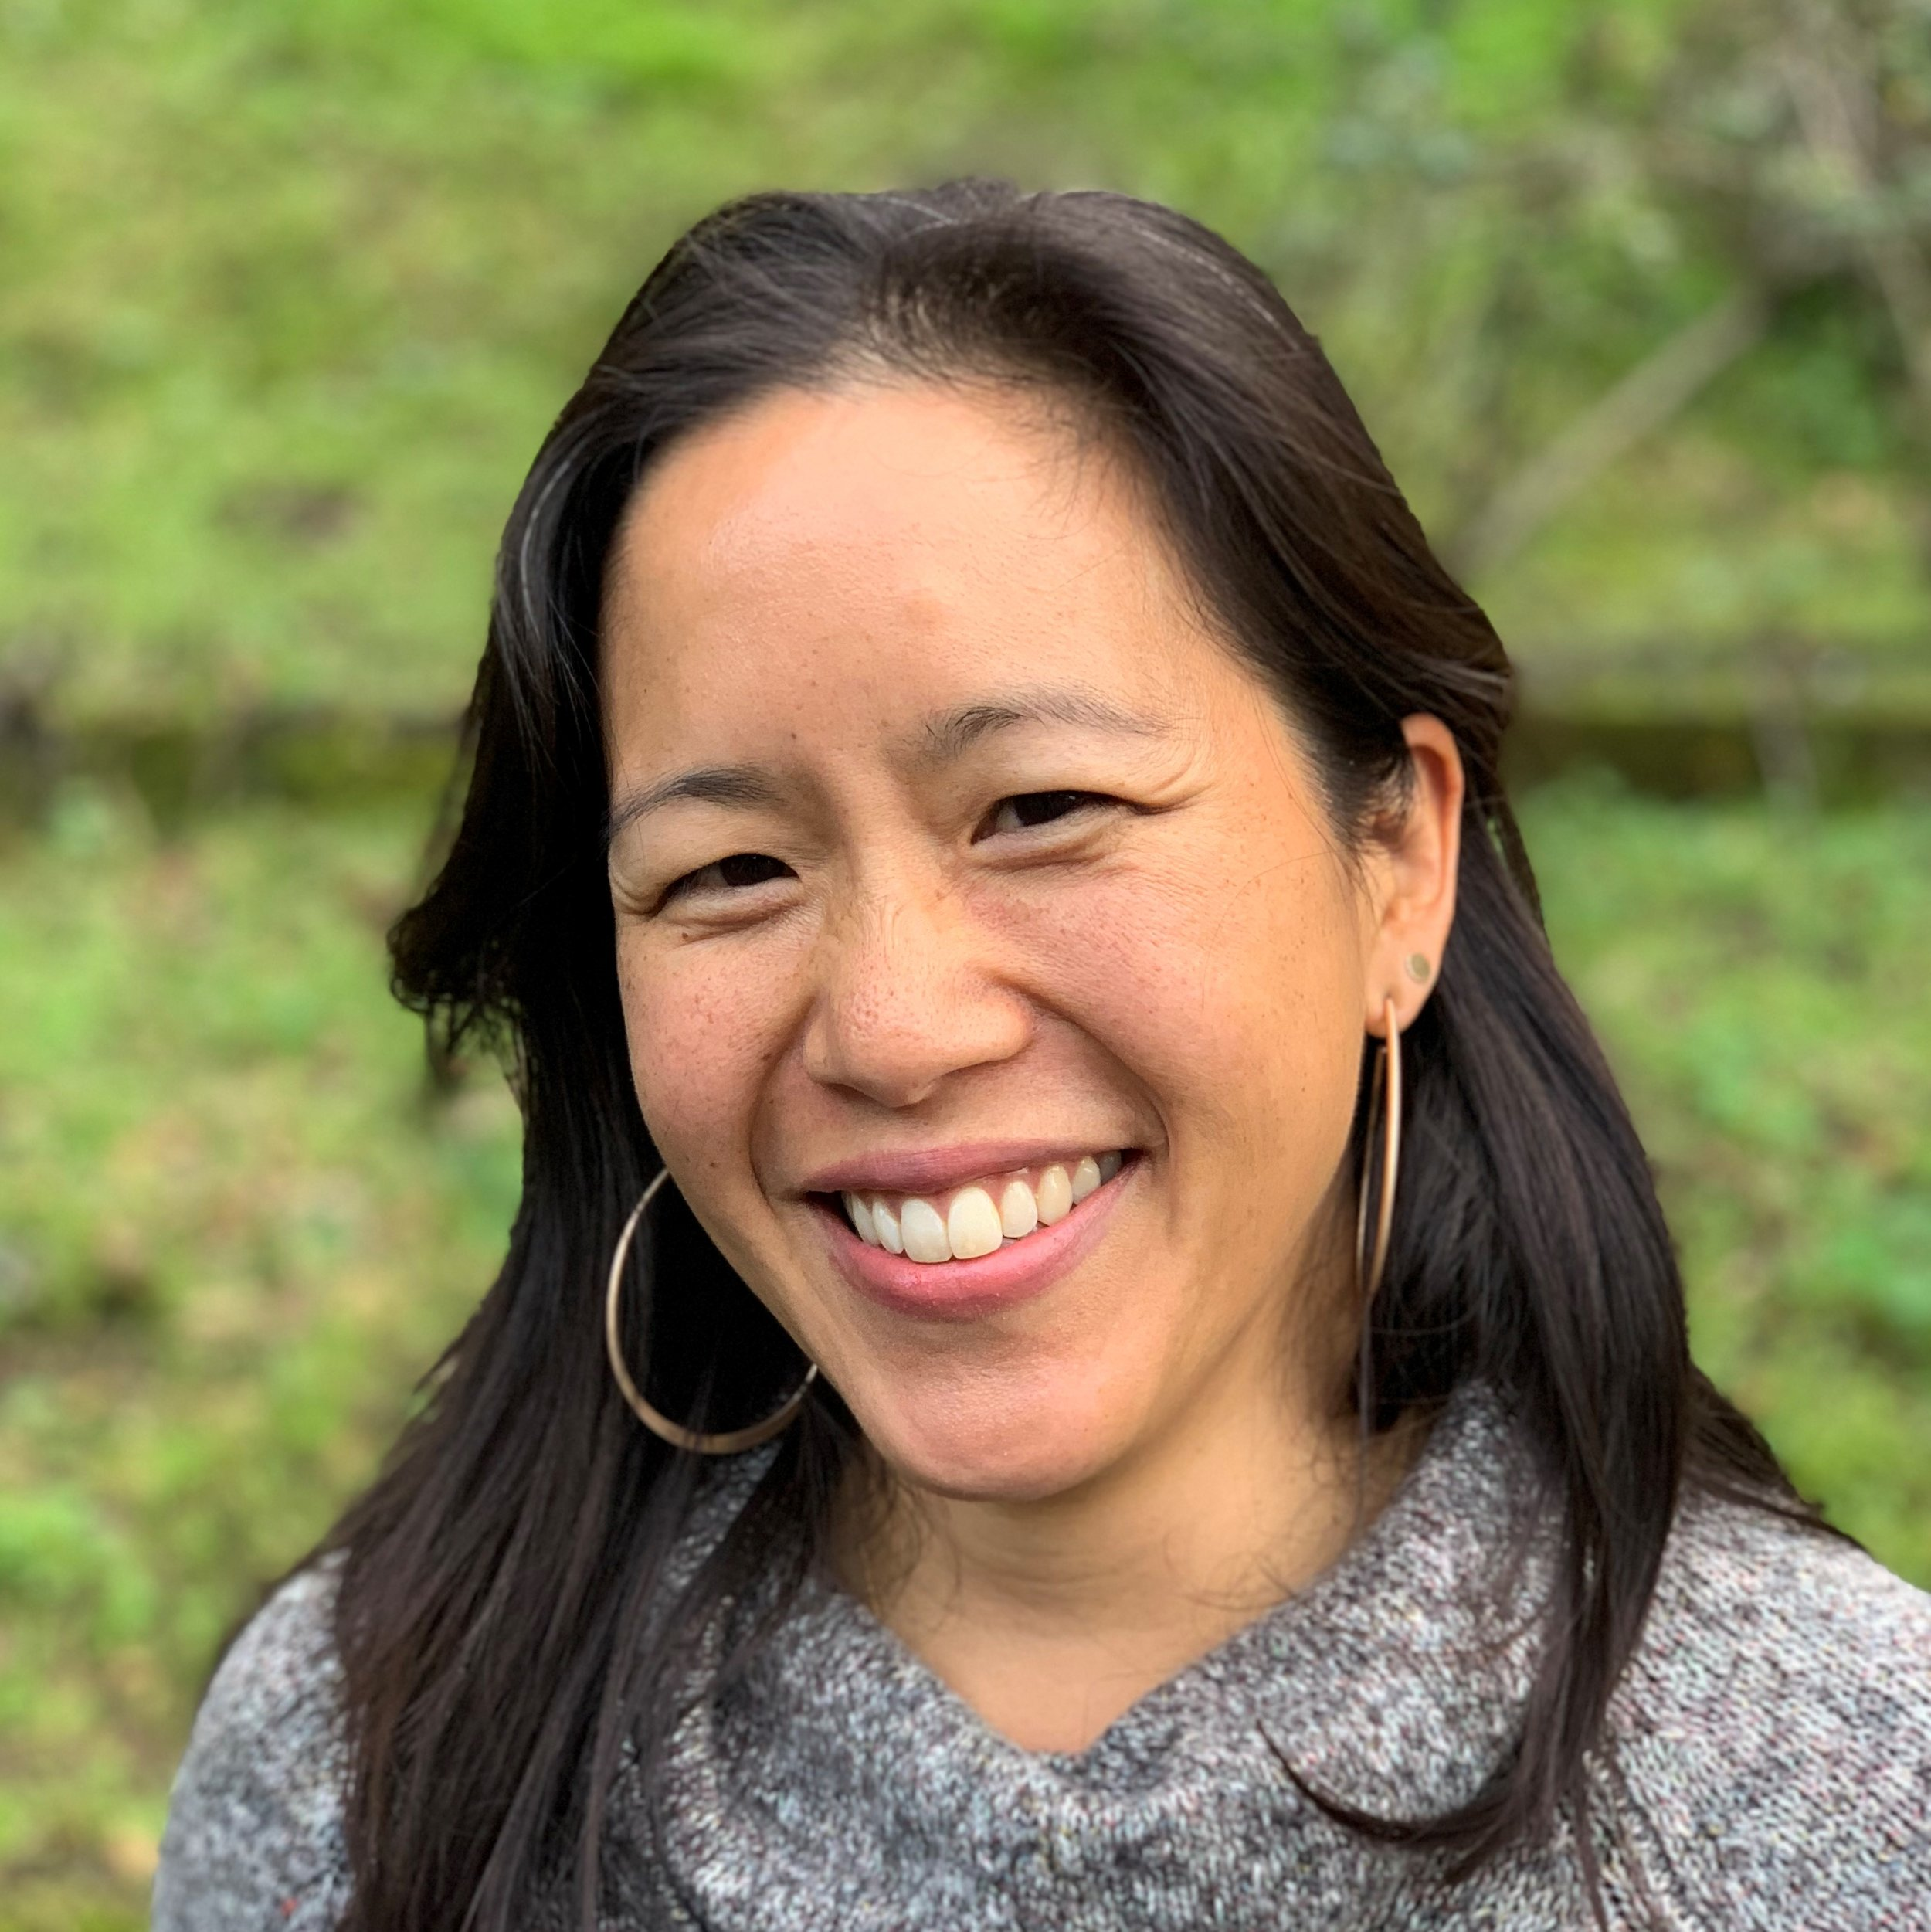 """Pei-Yee WooKitchen Table Advisors - """"Trust oneself and create brave spaces for people to be courageous, listen with empathy, and build + activate community.""""LinkedIn"""